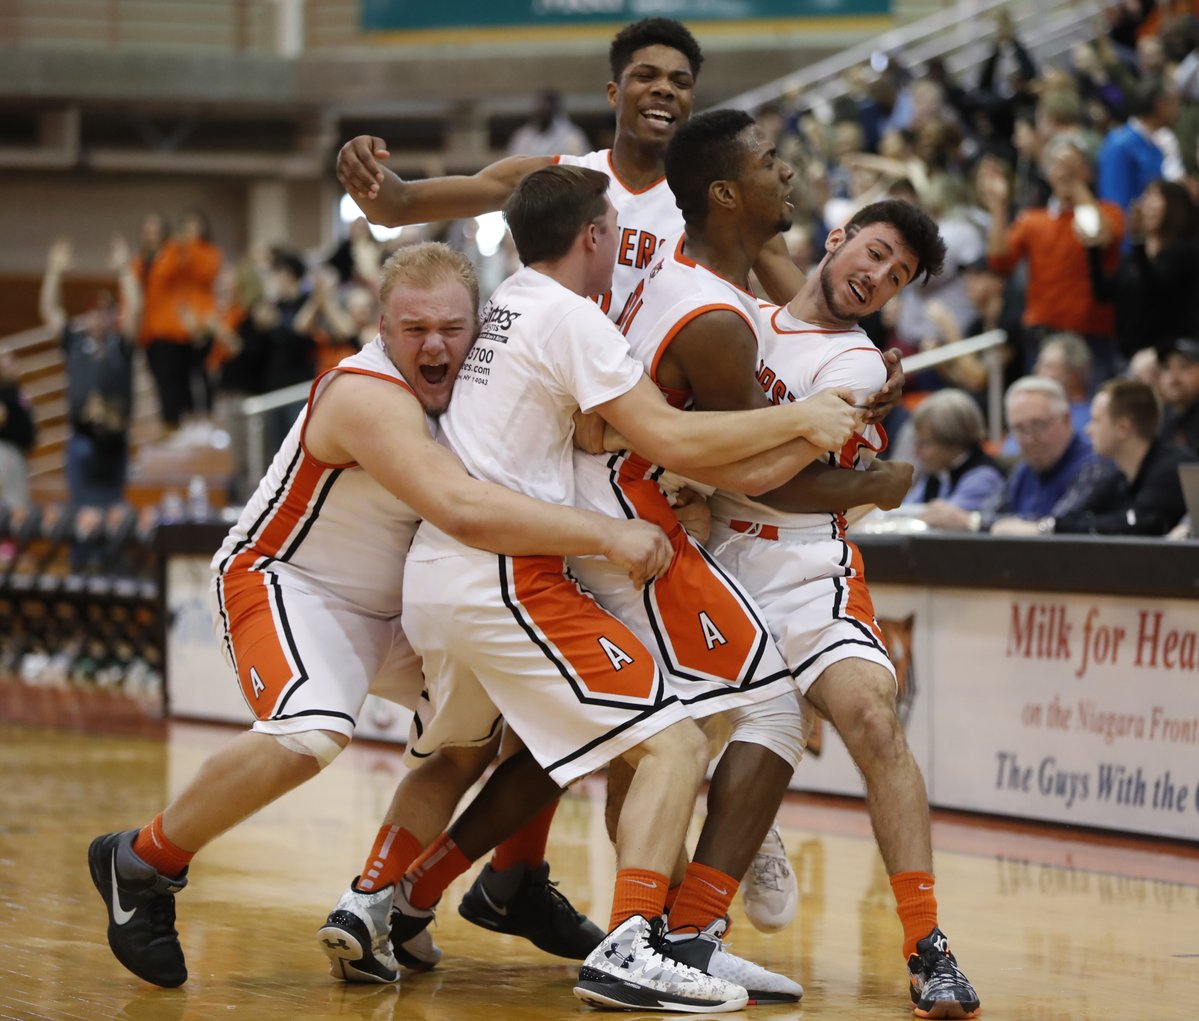 Barr's buzzer-beater wins Class A-2 championship for Amherst